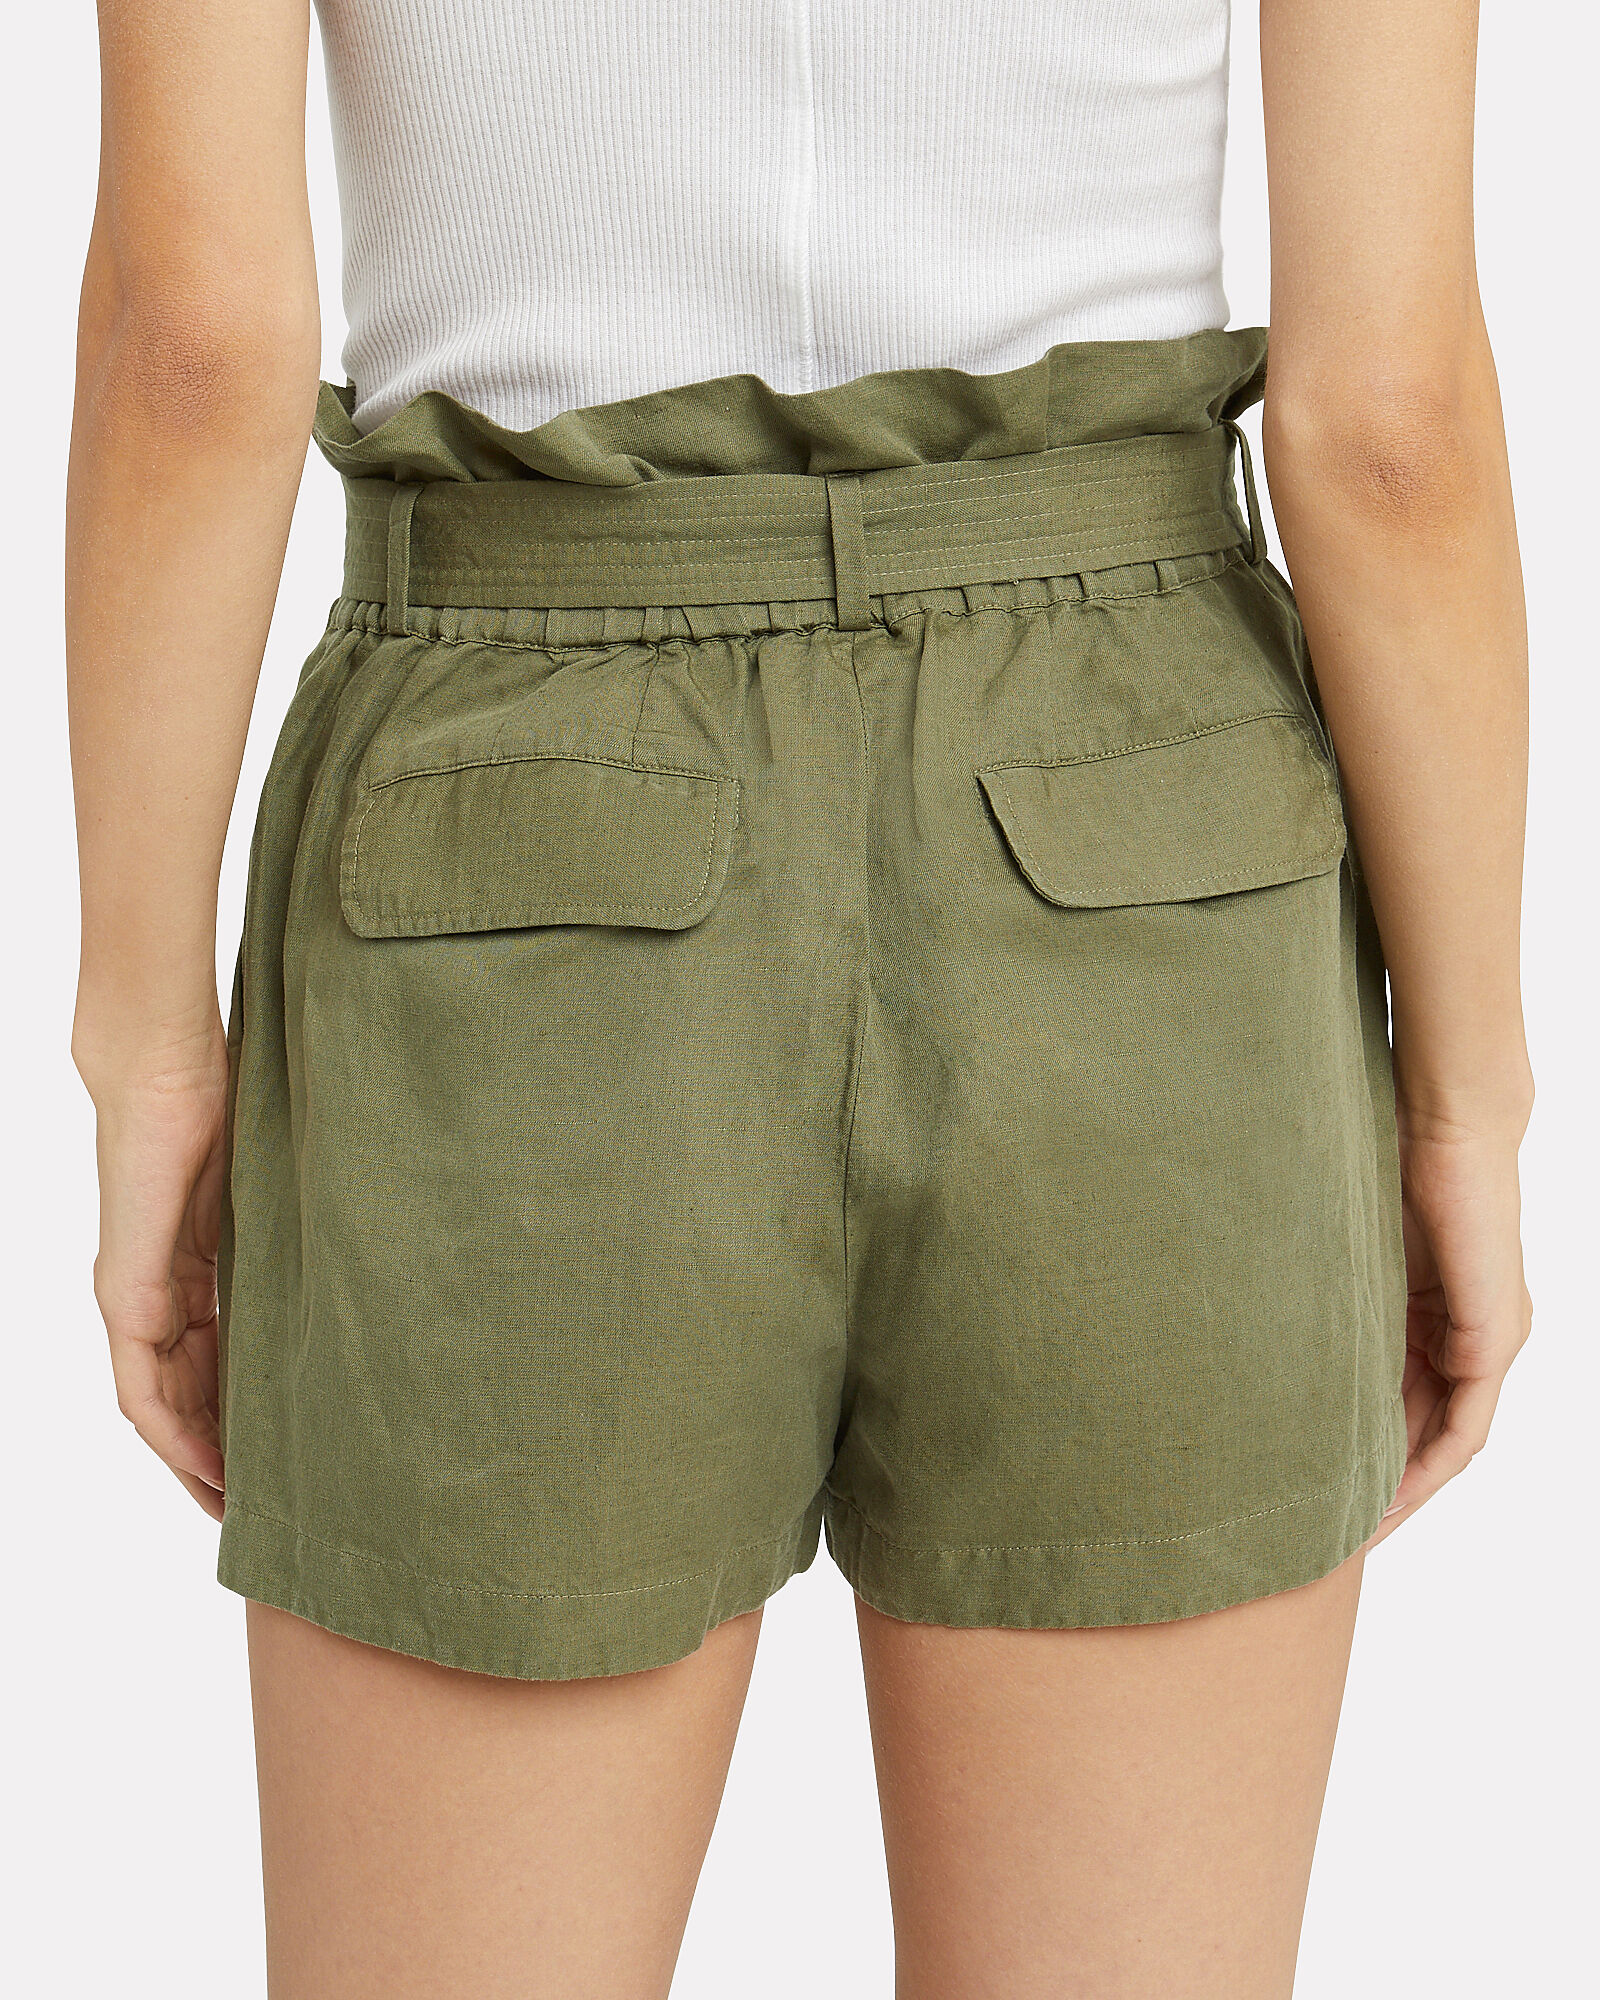 Paperbag Army Linen-Blend Shorts, OLIVE/ARMY, hi-res